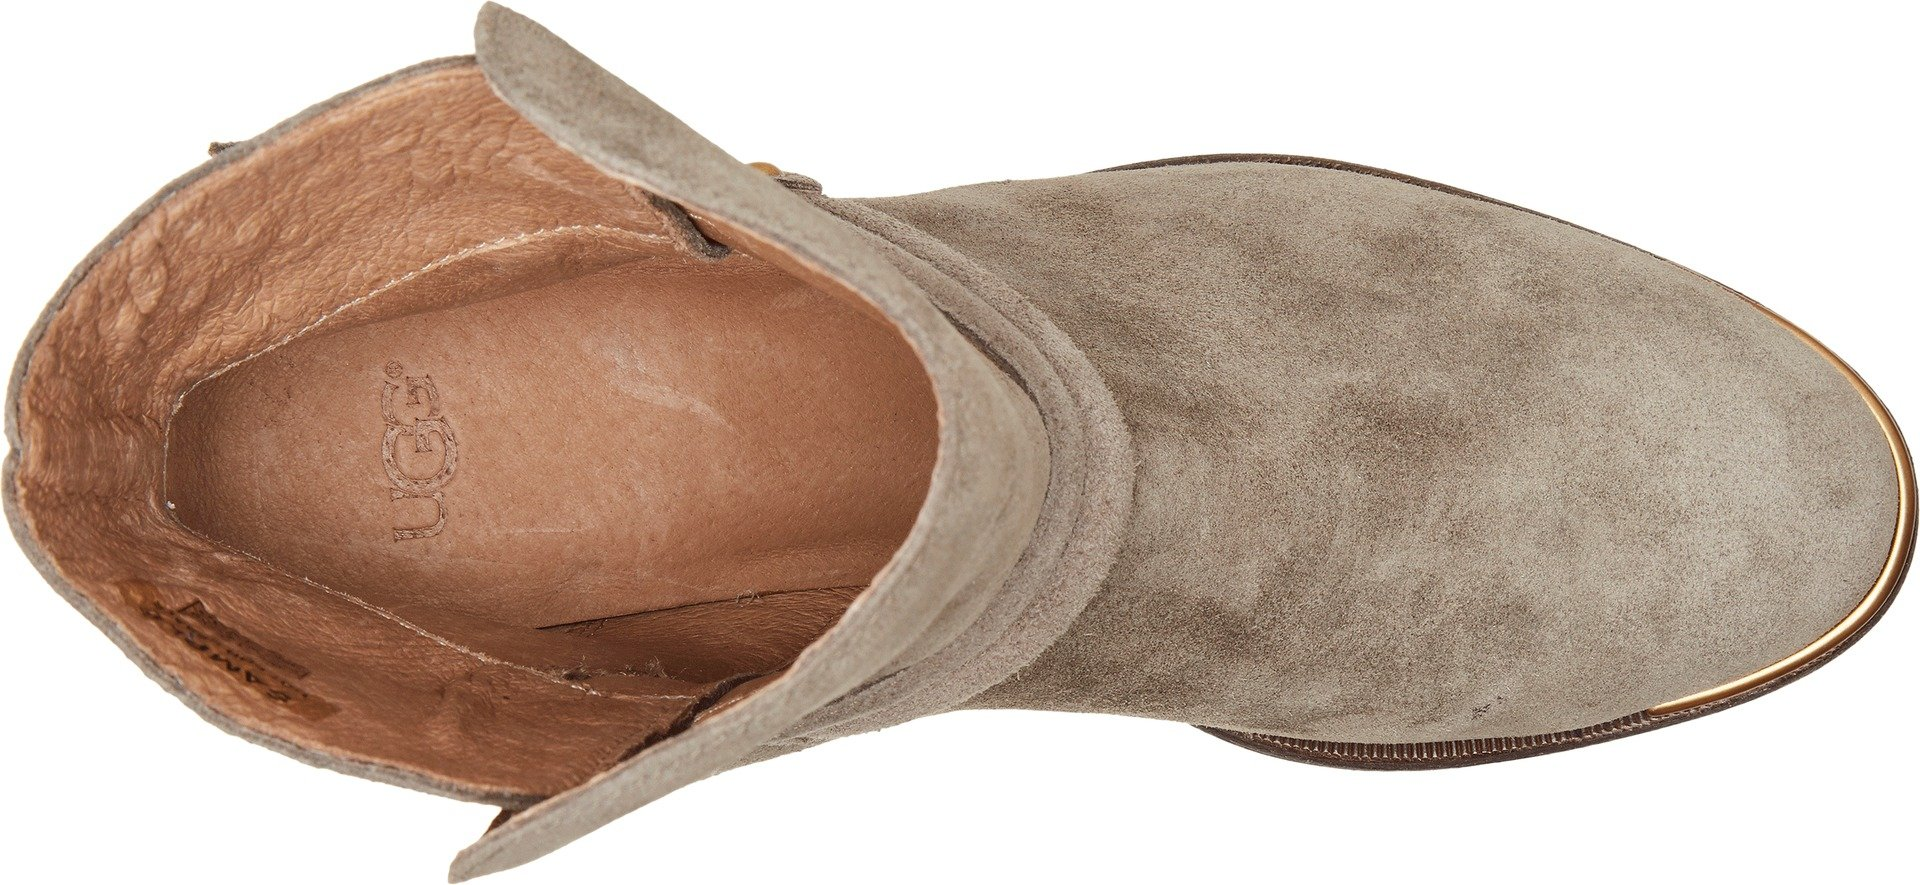 UGG Women's Kelby Winter Boot, Mouse, 7.5 M US by UGG (Image #2)